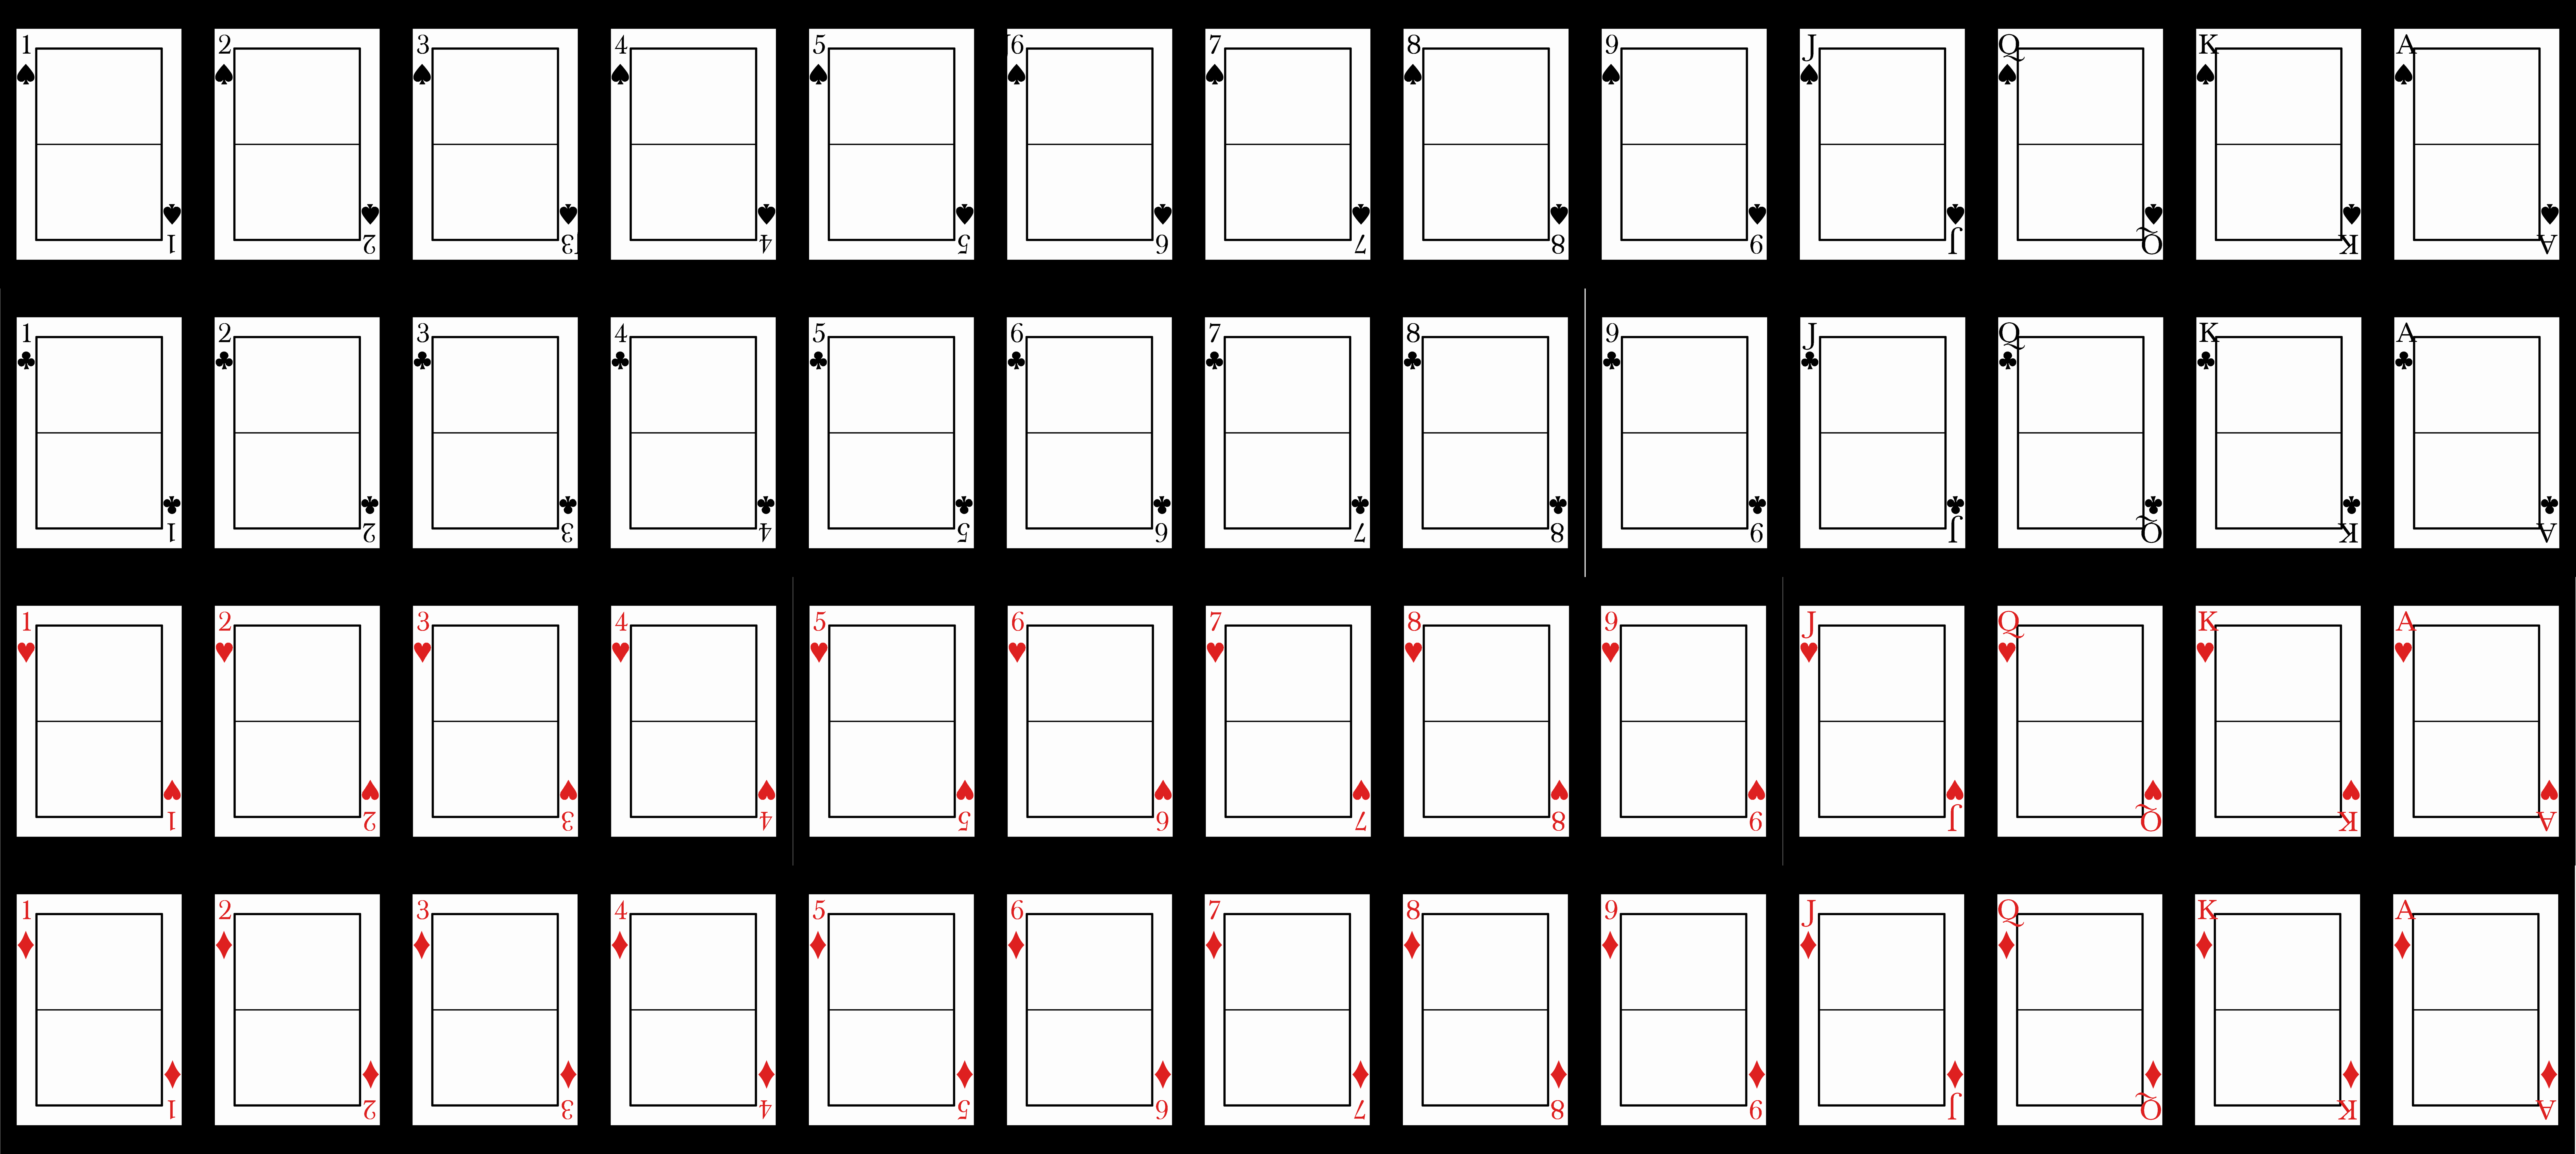 Blank Playing Card Template Best Of Customised Playing Cards Shop Template by isabel